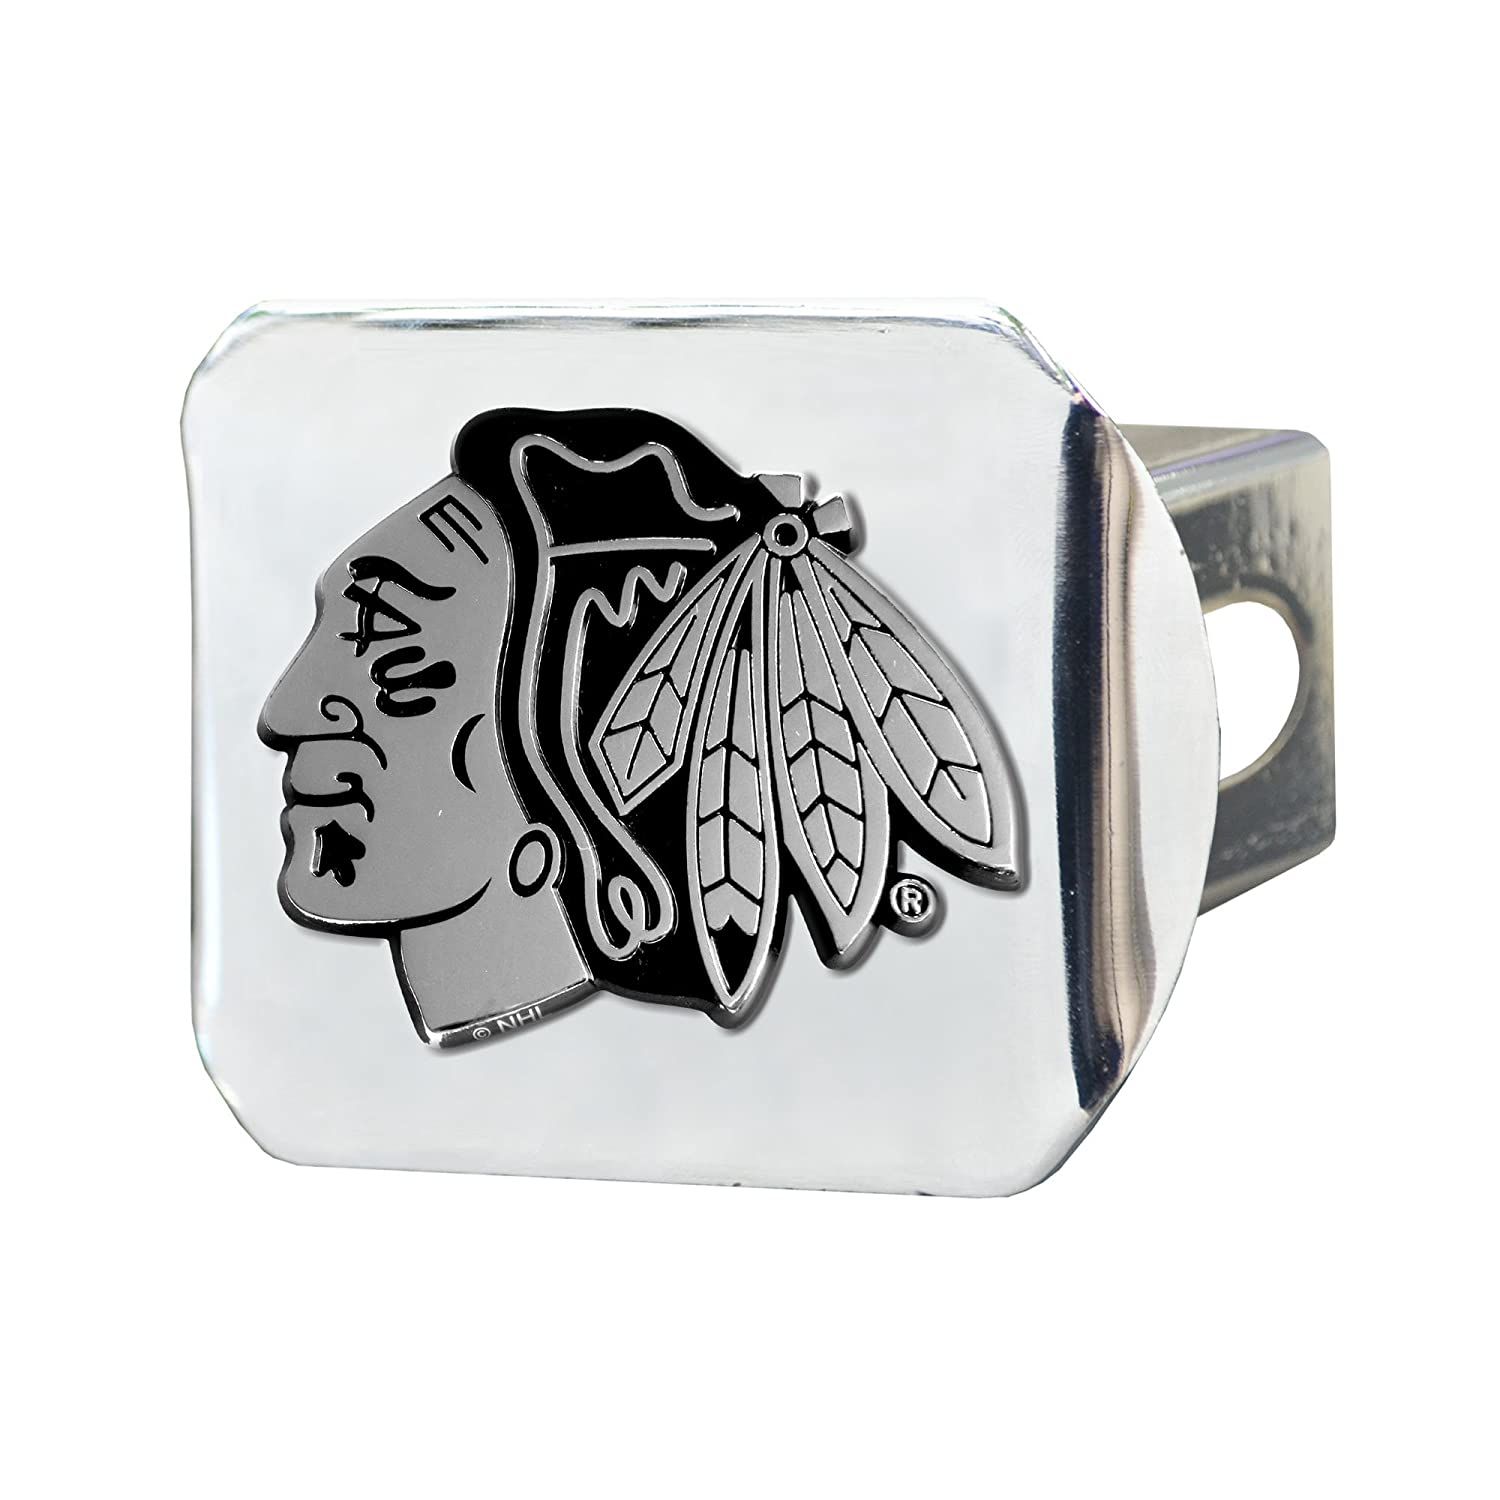 FANMATS 14963 NHL Chicago Blackhawks Chrome Hitch Cover